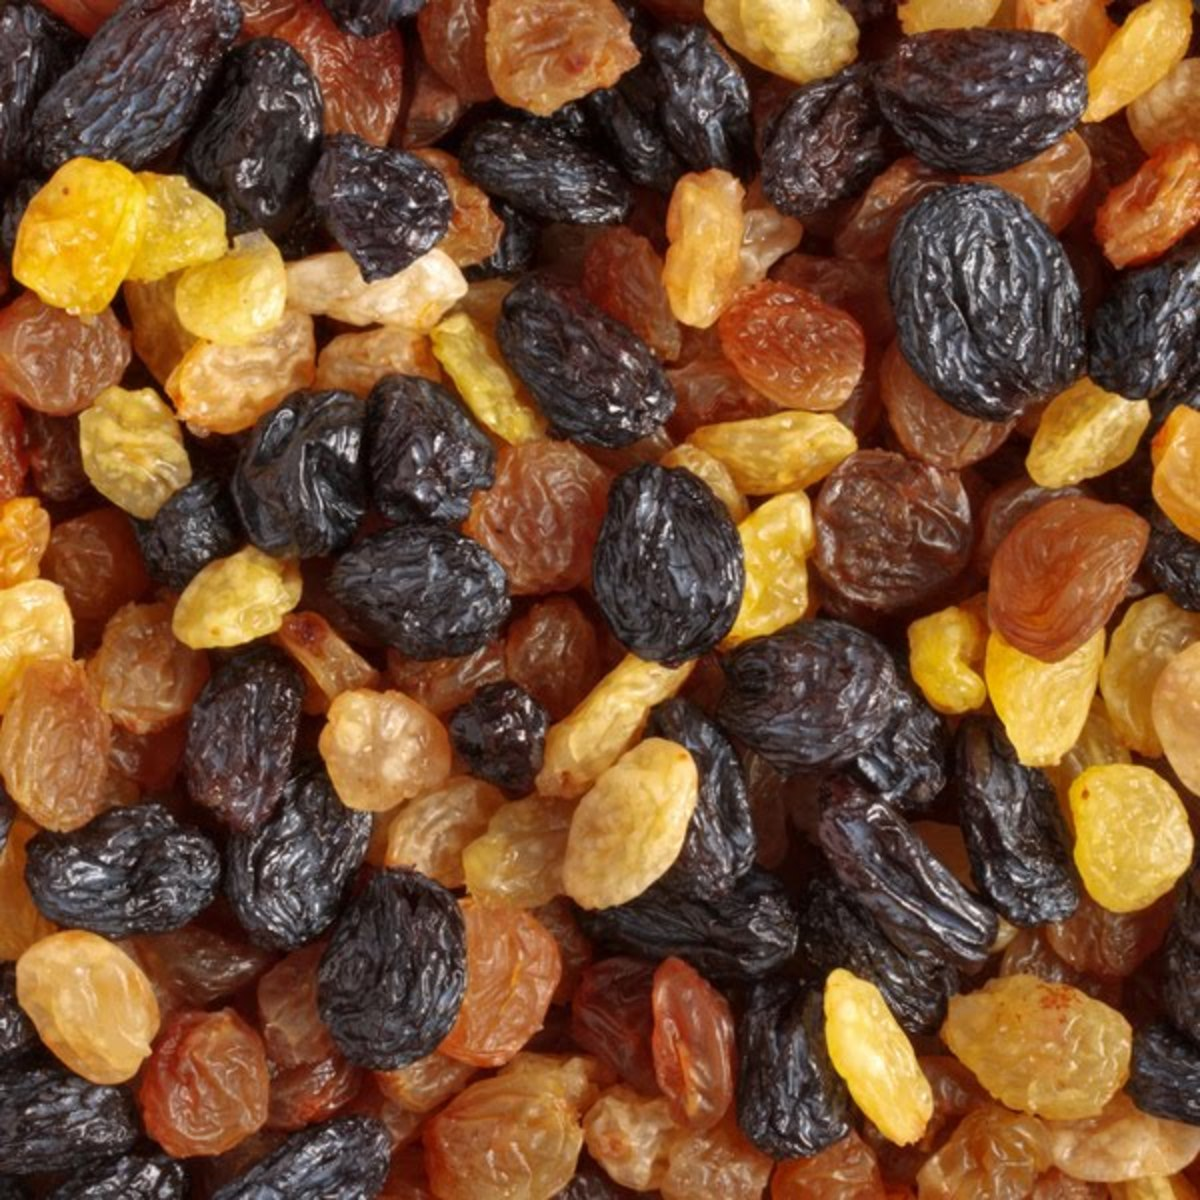 One cup of raisins contains 3g of soluble fiber. The soluble fiber together with the polyphenols found in raisins both interfere with cholesterol absorption.